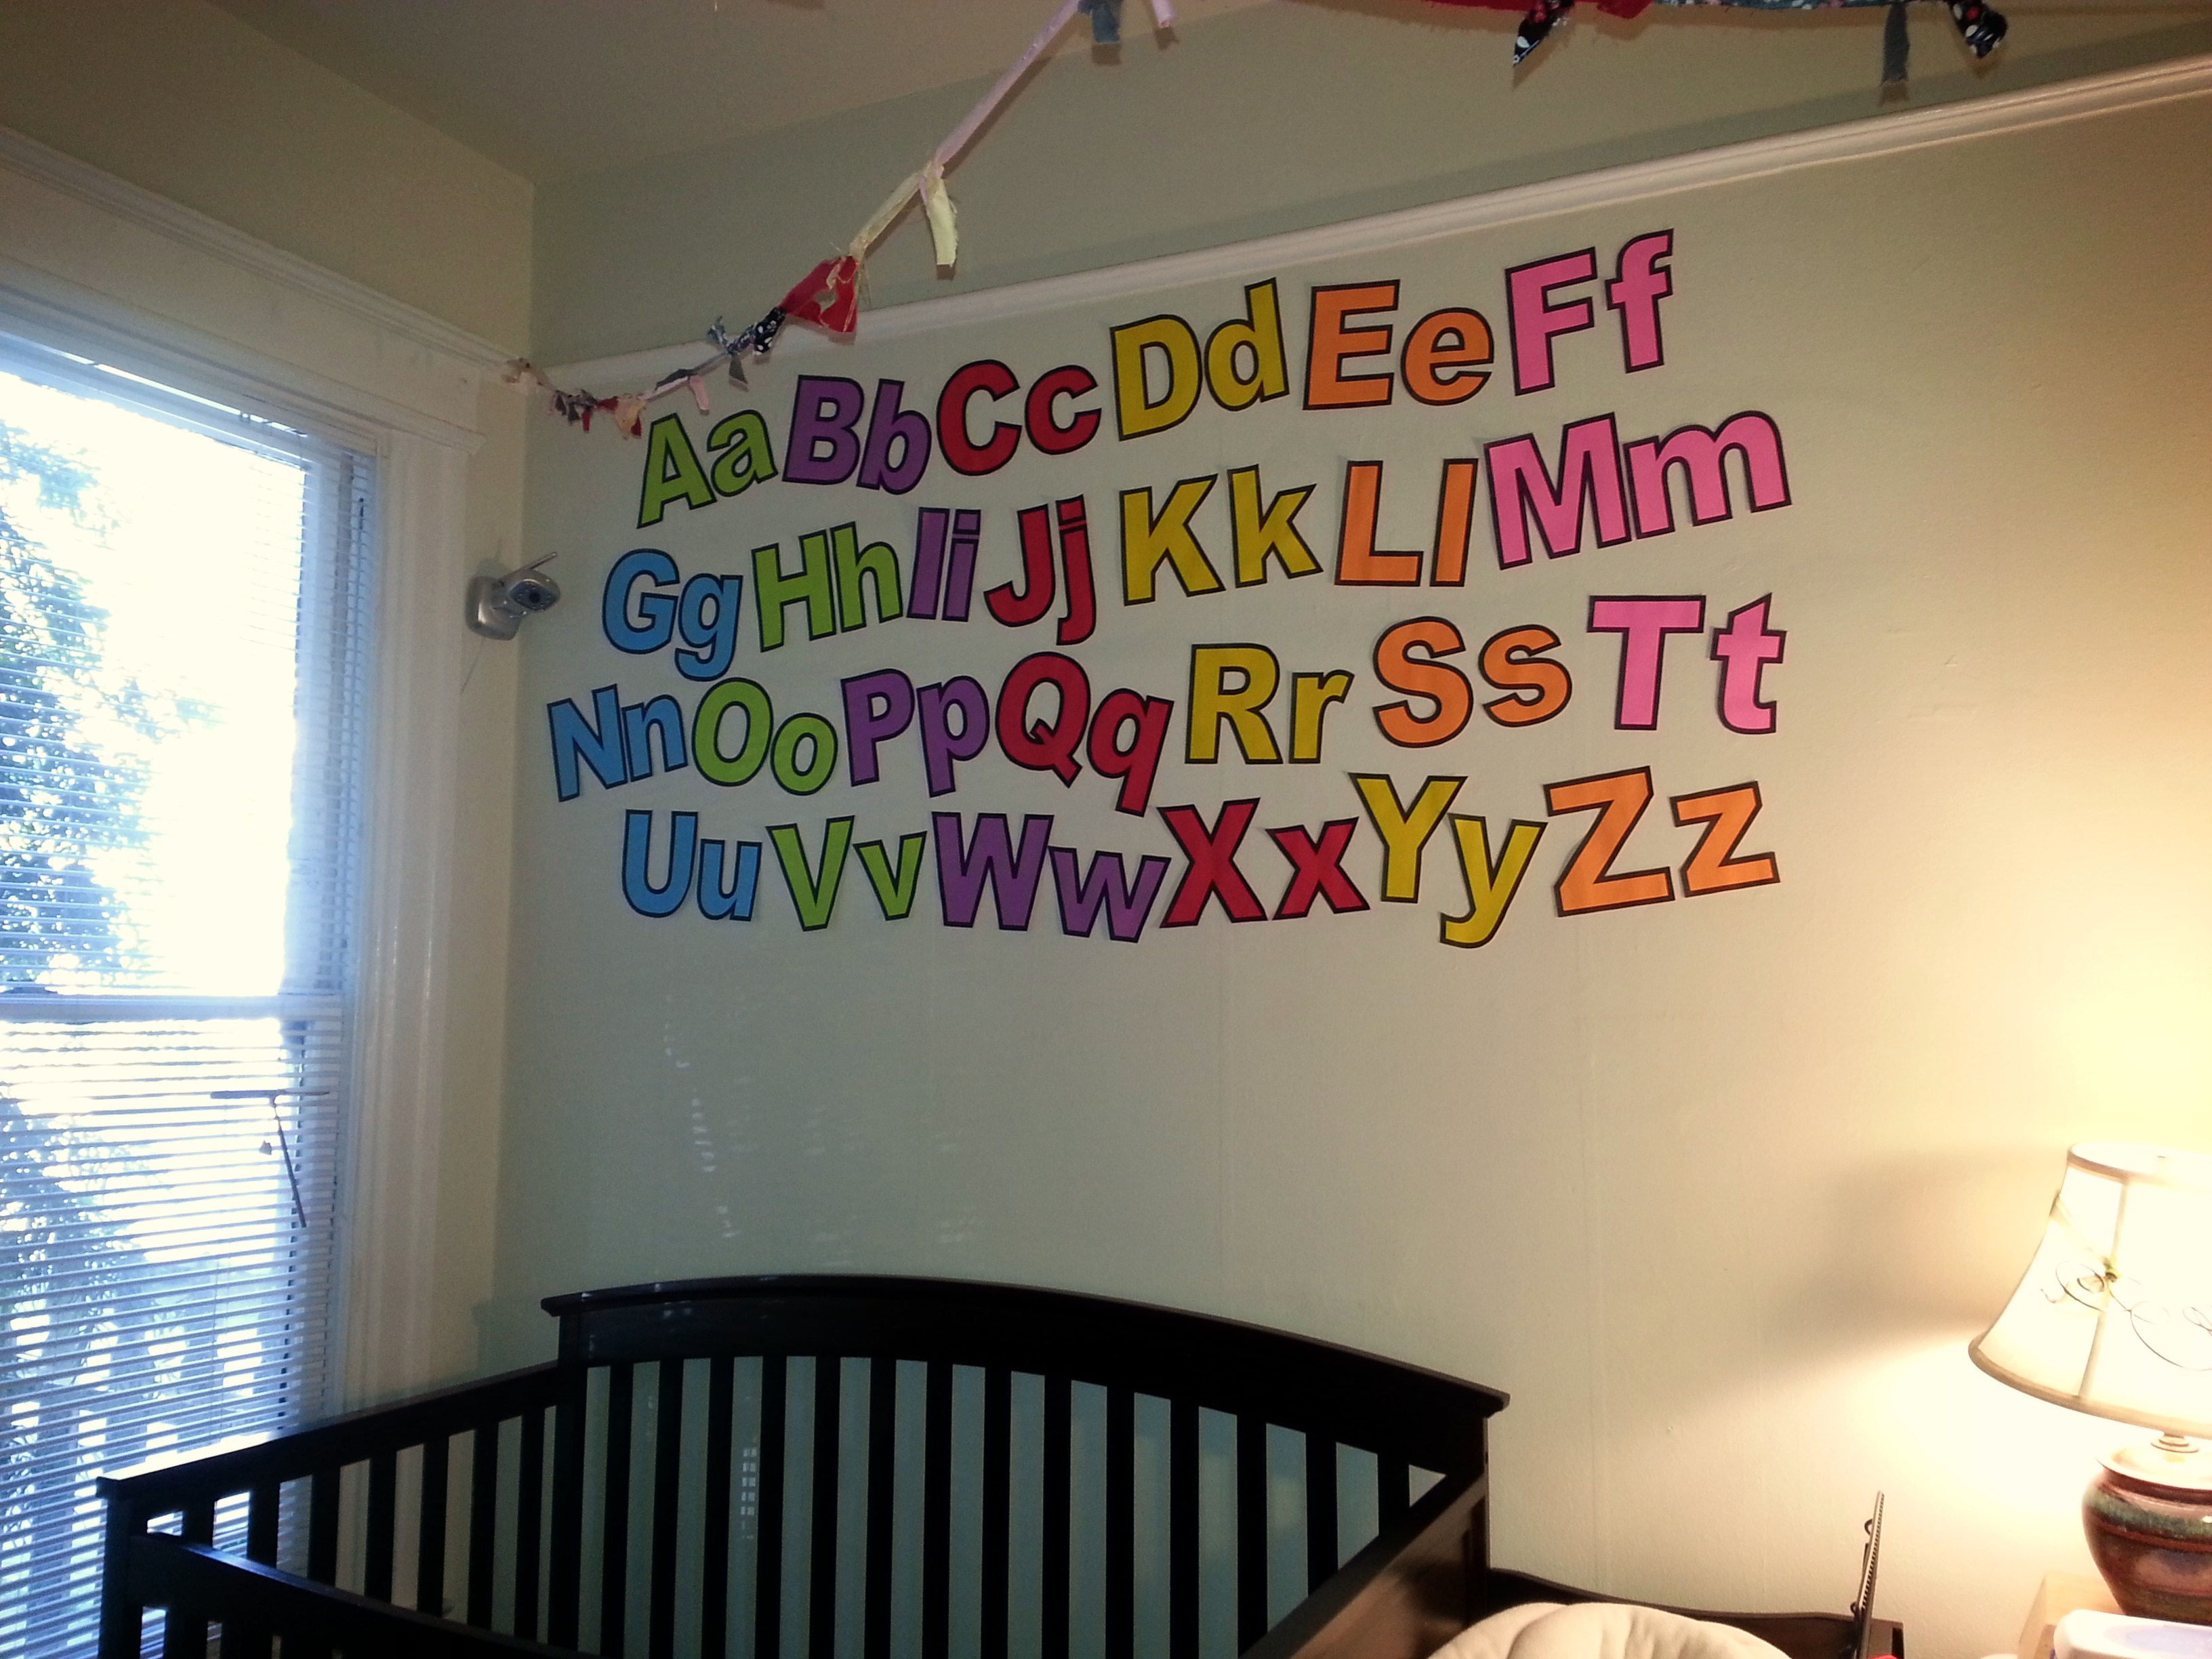 Today S Hint Diy Budget Friendly Nursery Wall Letters